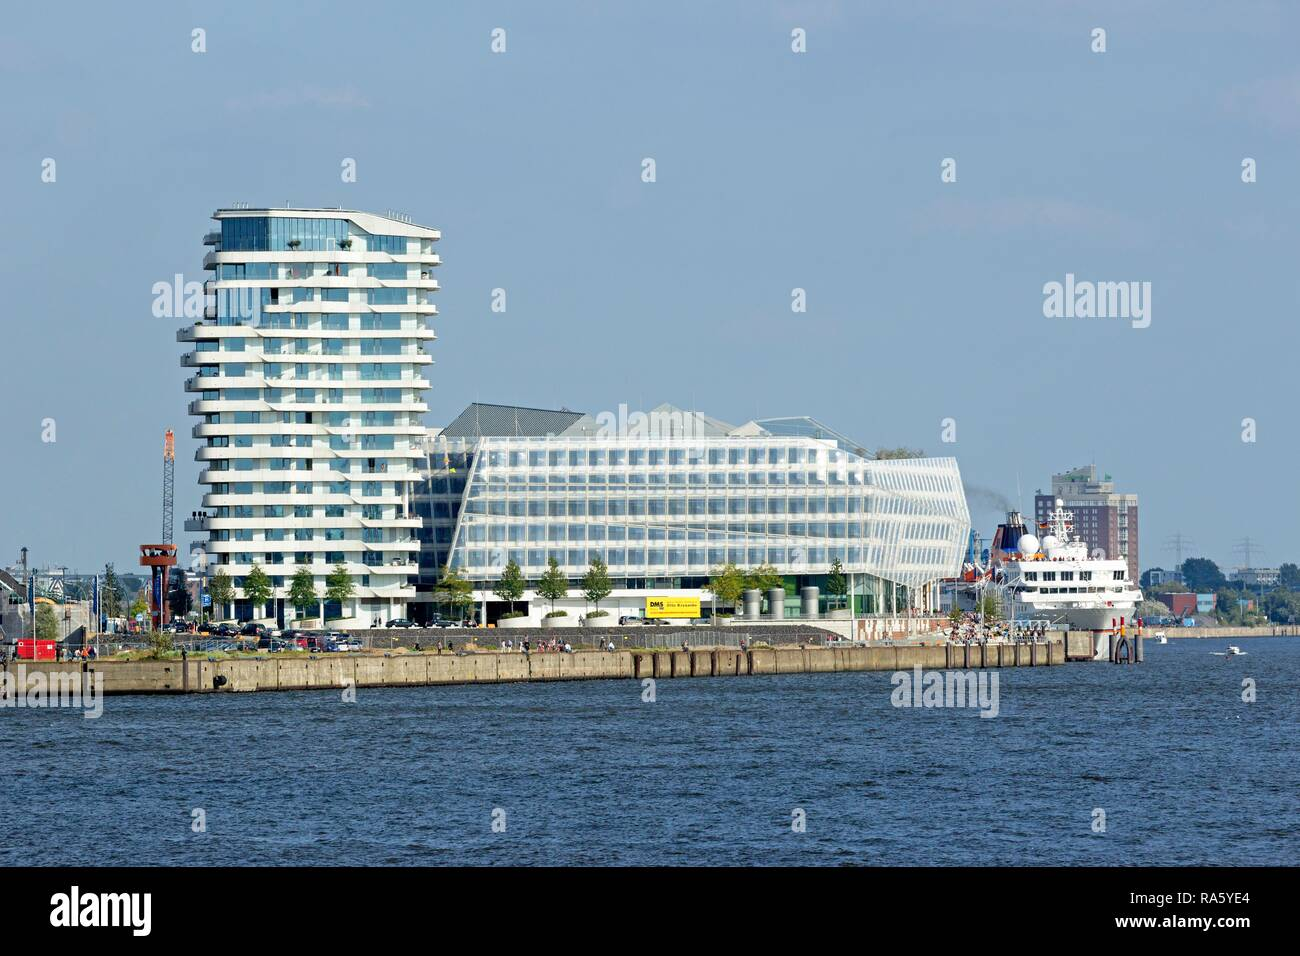 Marco Polo Tower and Unilever House, Hamburg - Stock Image